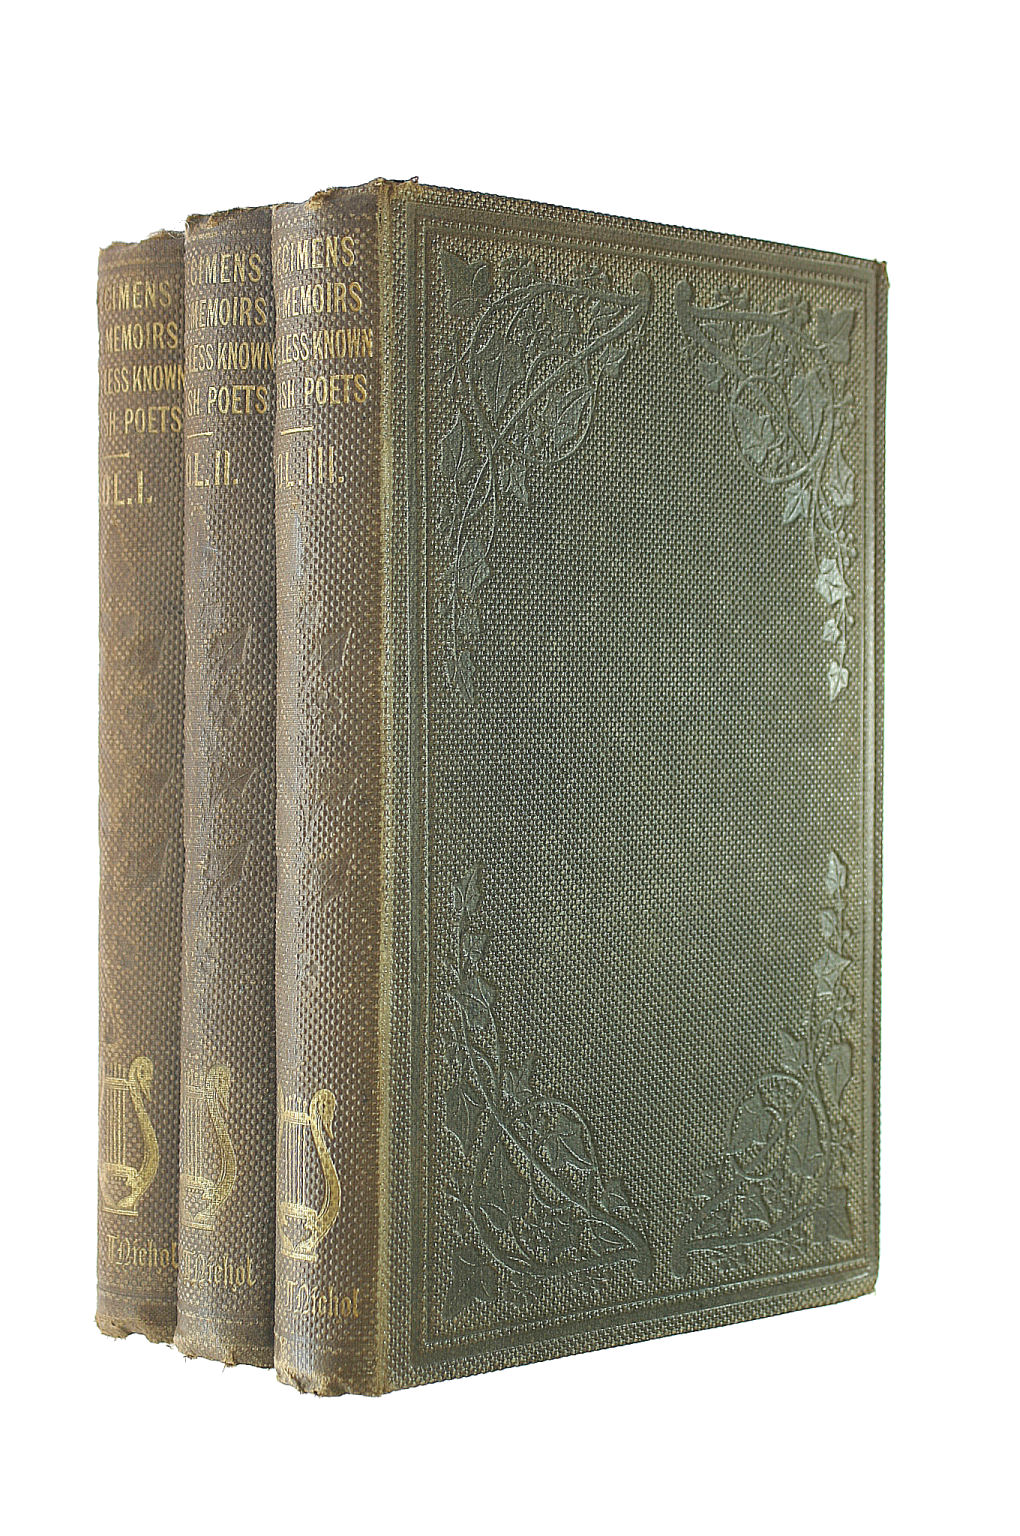 Image for Specimens with Memoirs of the Less-Known British Poets, with an Introductory Essay, in 3 Volumes